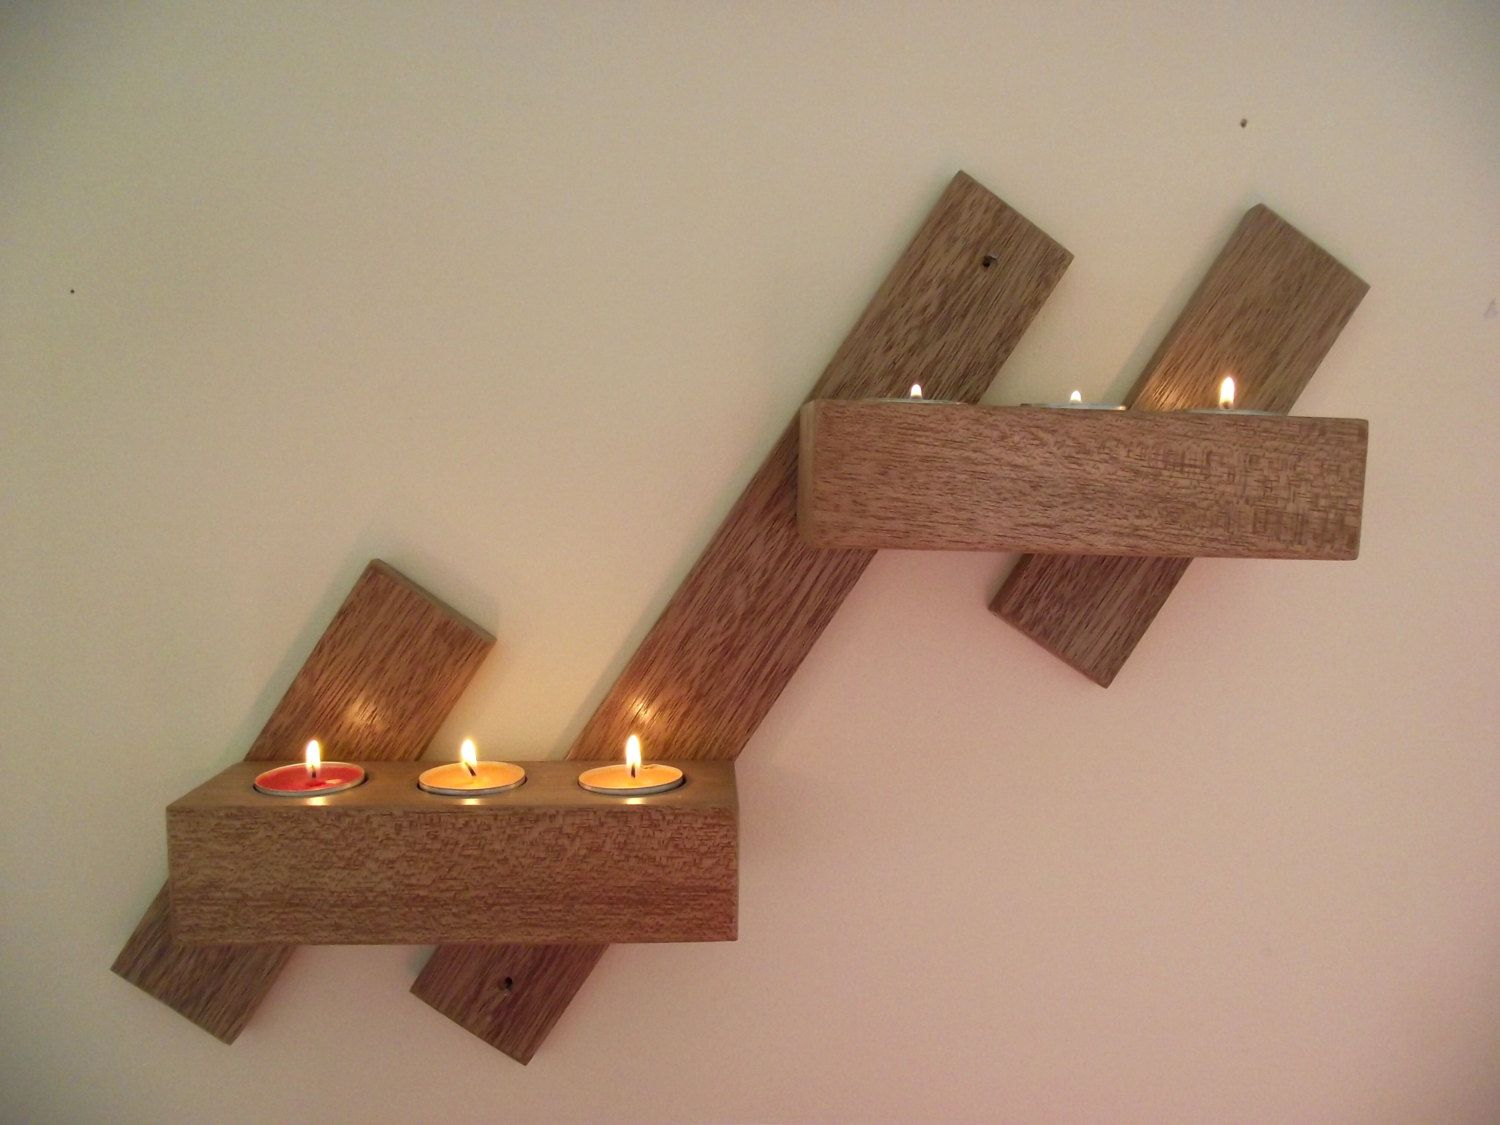 Wall Hanging Mahogany Or Oak Candle Holder,Wall Candle Holders, Wooden Wall  Sconces,Hanging Tealigt Holder,modern Decor,rustic Style